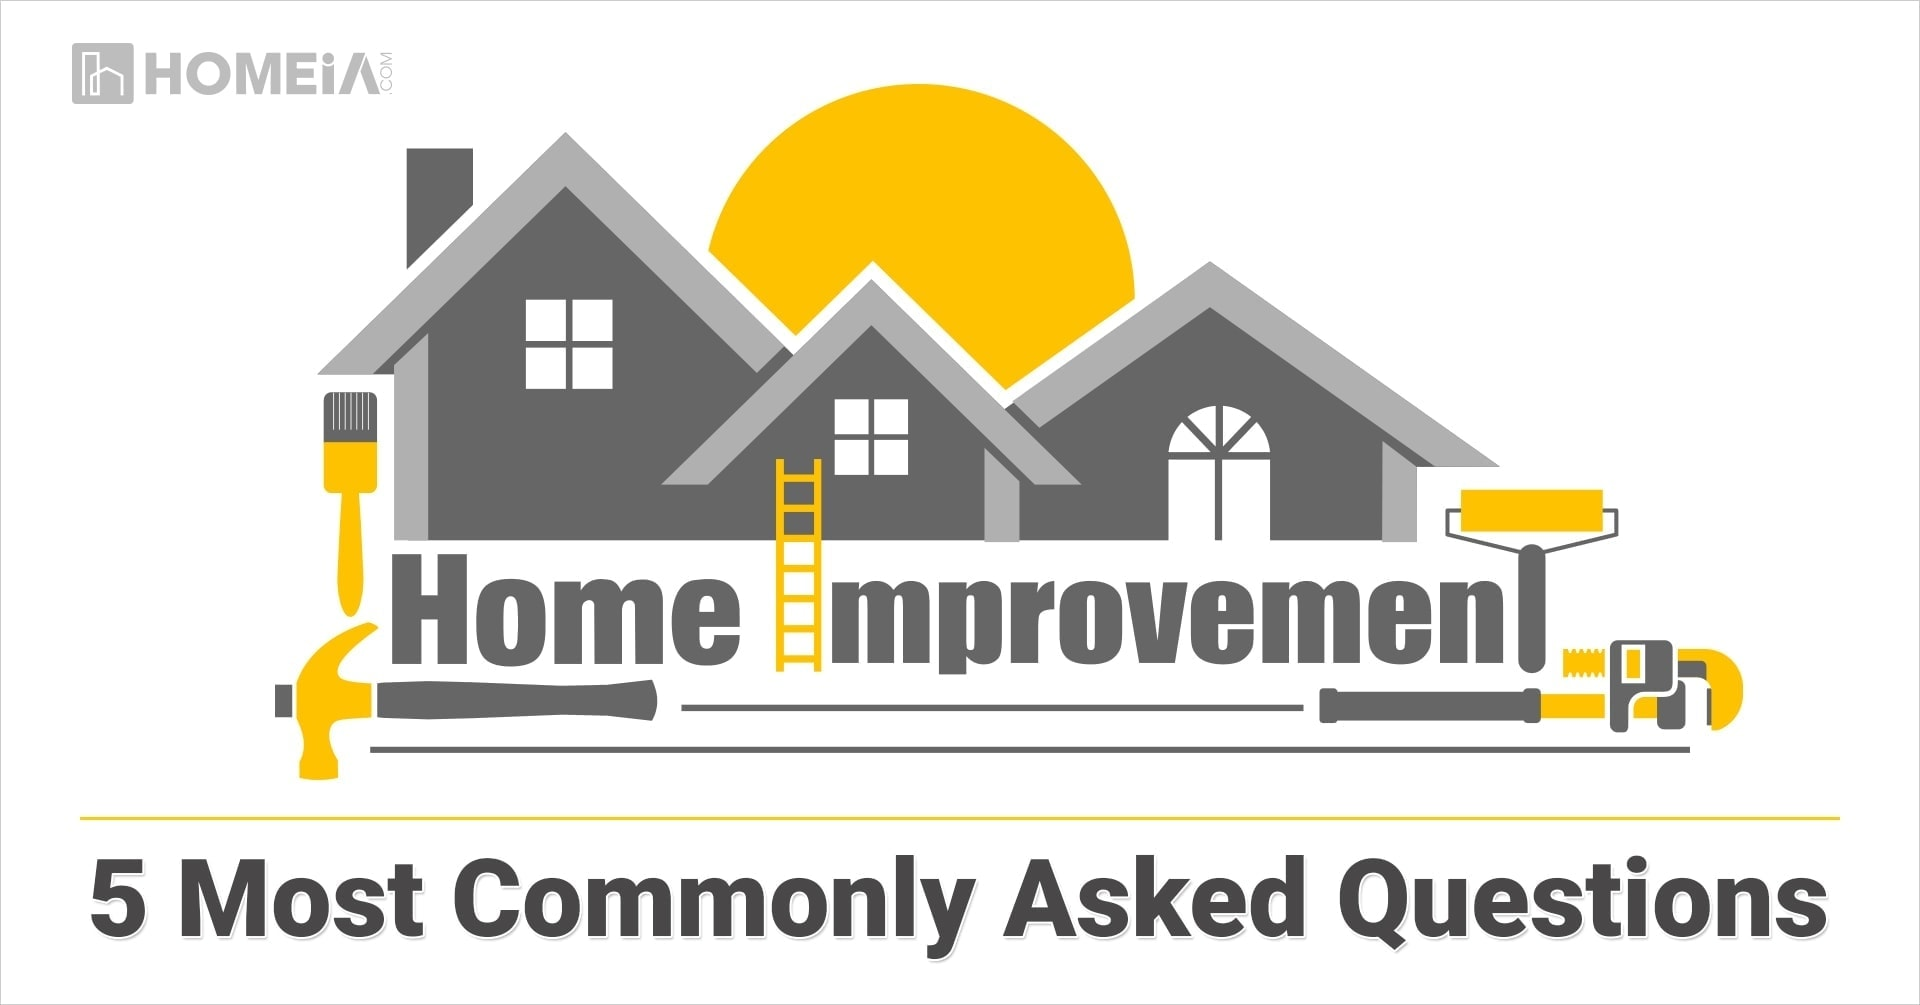 Home Improvements Require Permits & Commonly Asked Questions